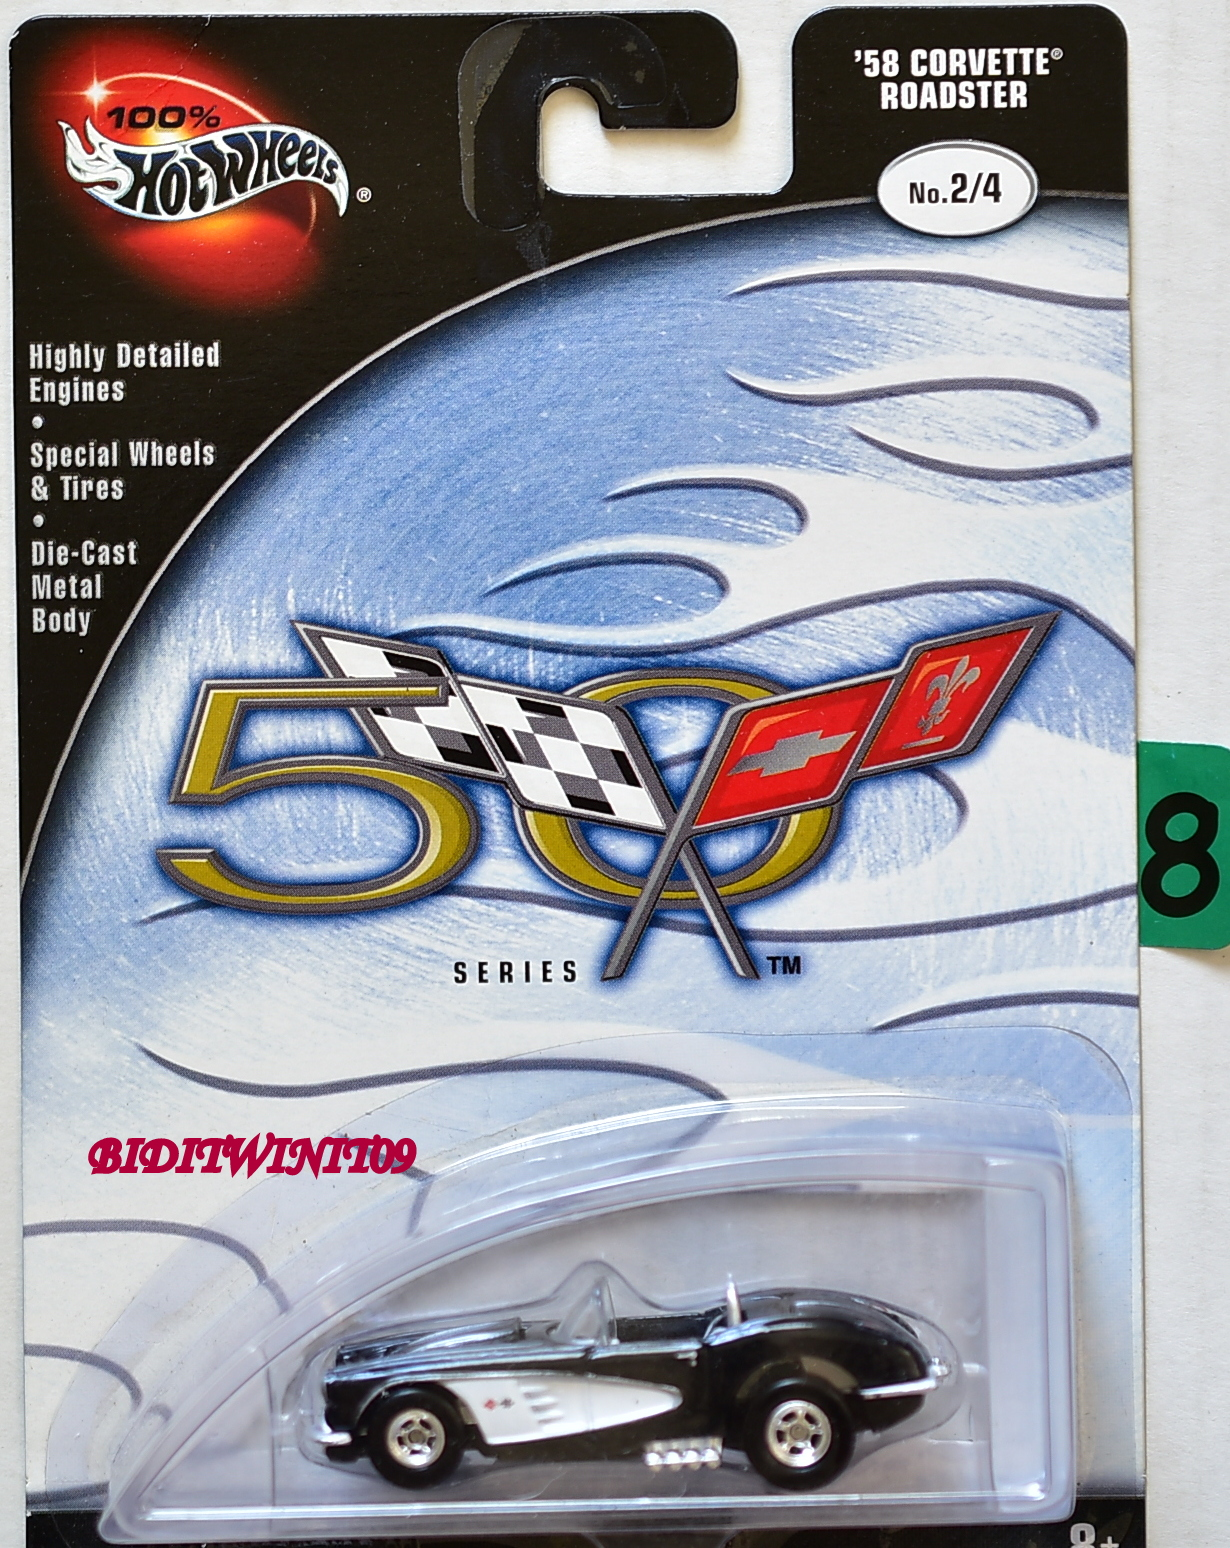 100% HOT WHEELS 50 ANNIVERSARY '58 CORVETTE ROADSTER #2/4 BLACK